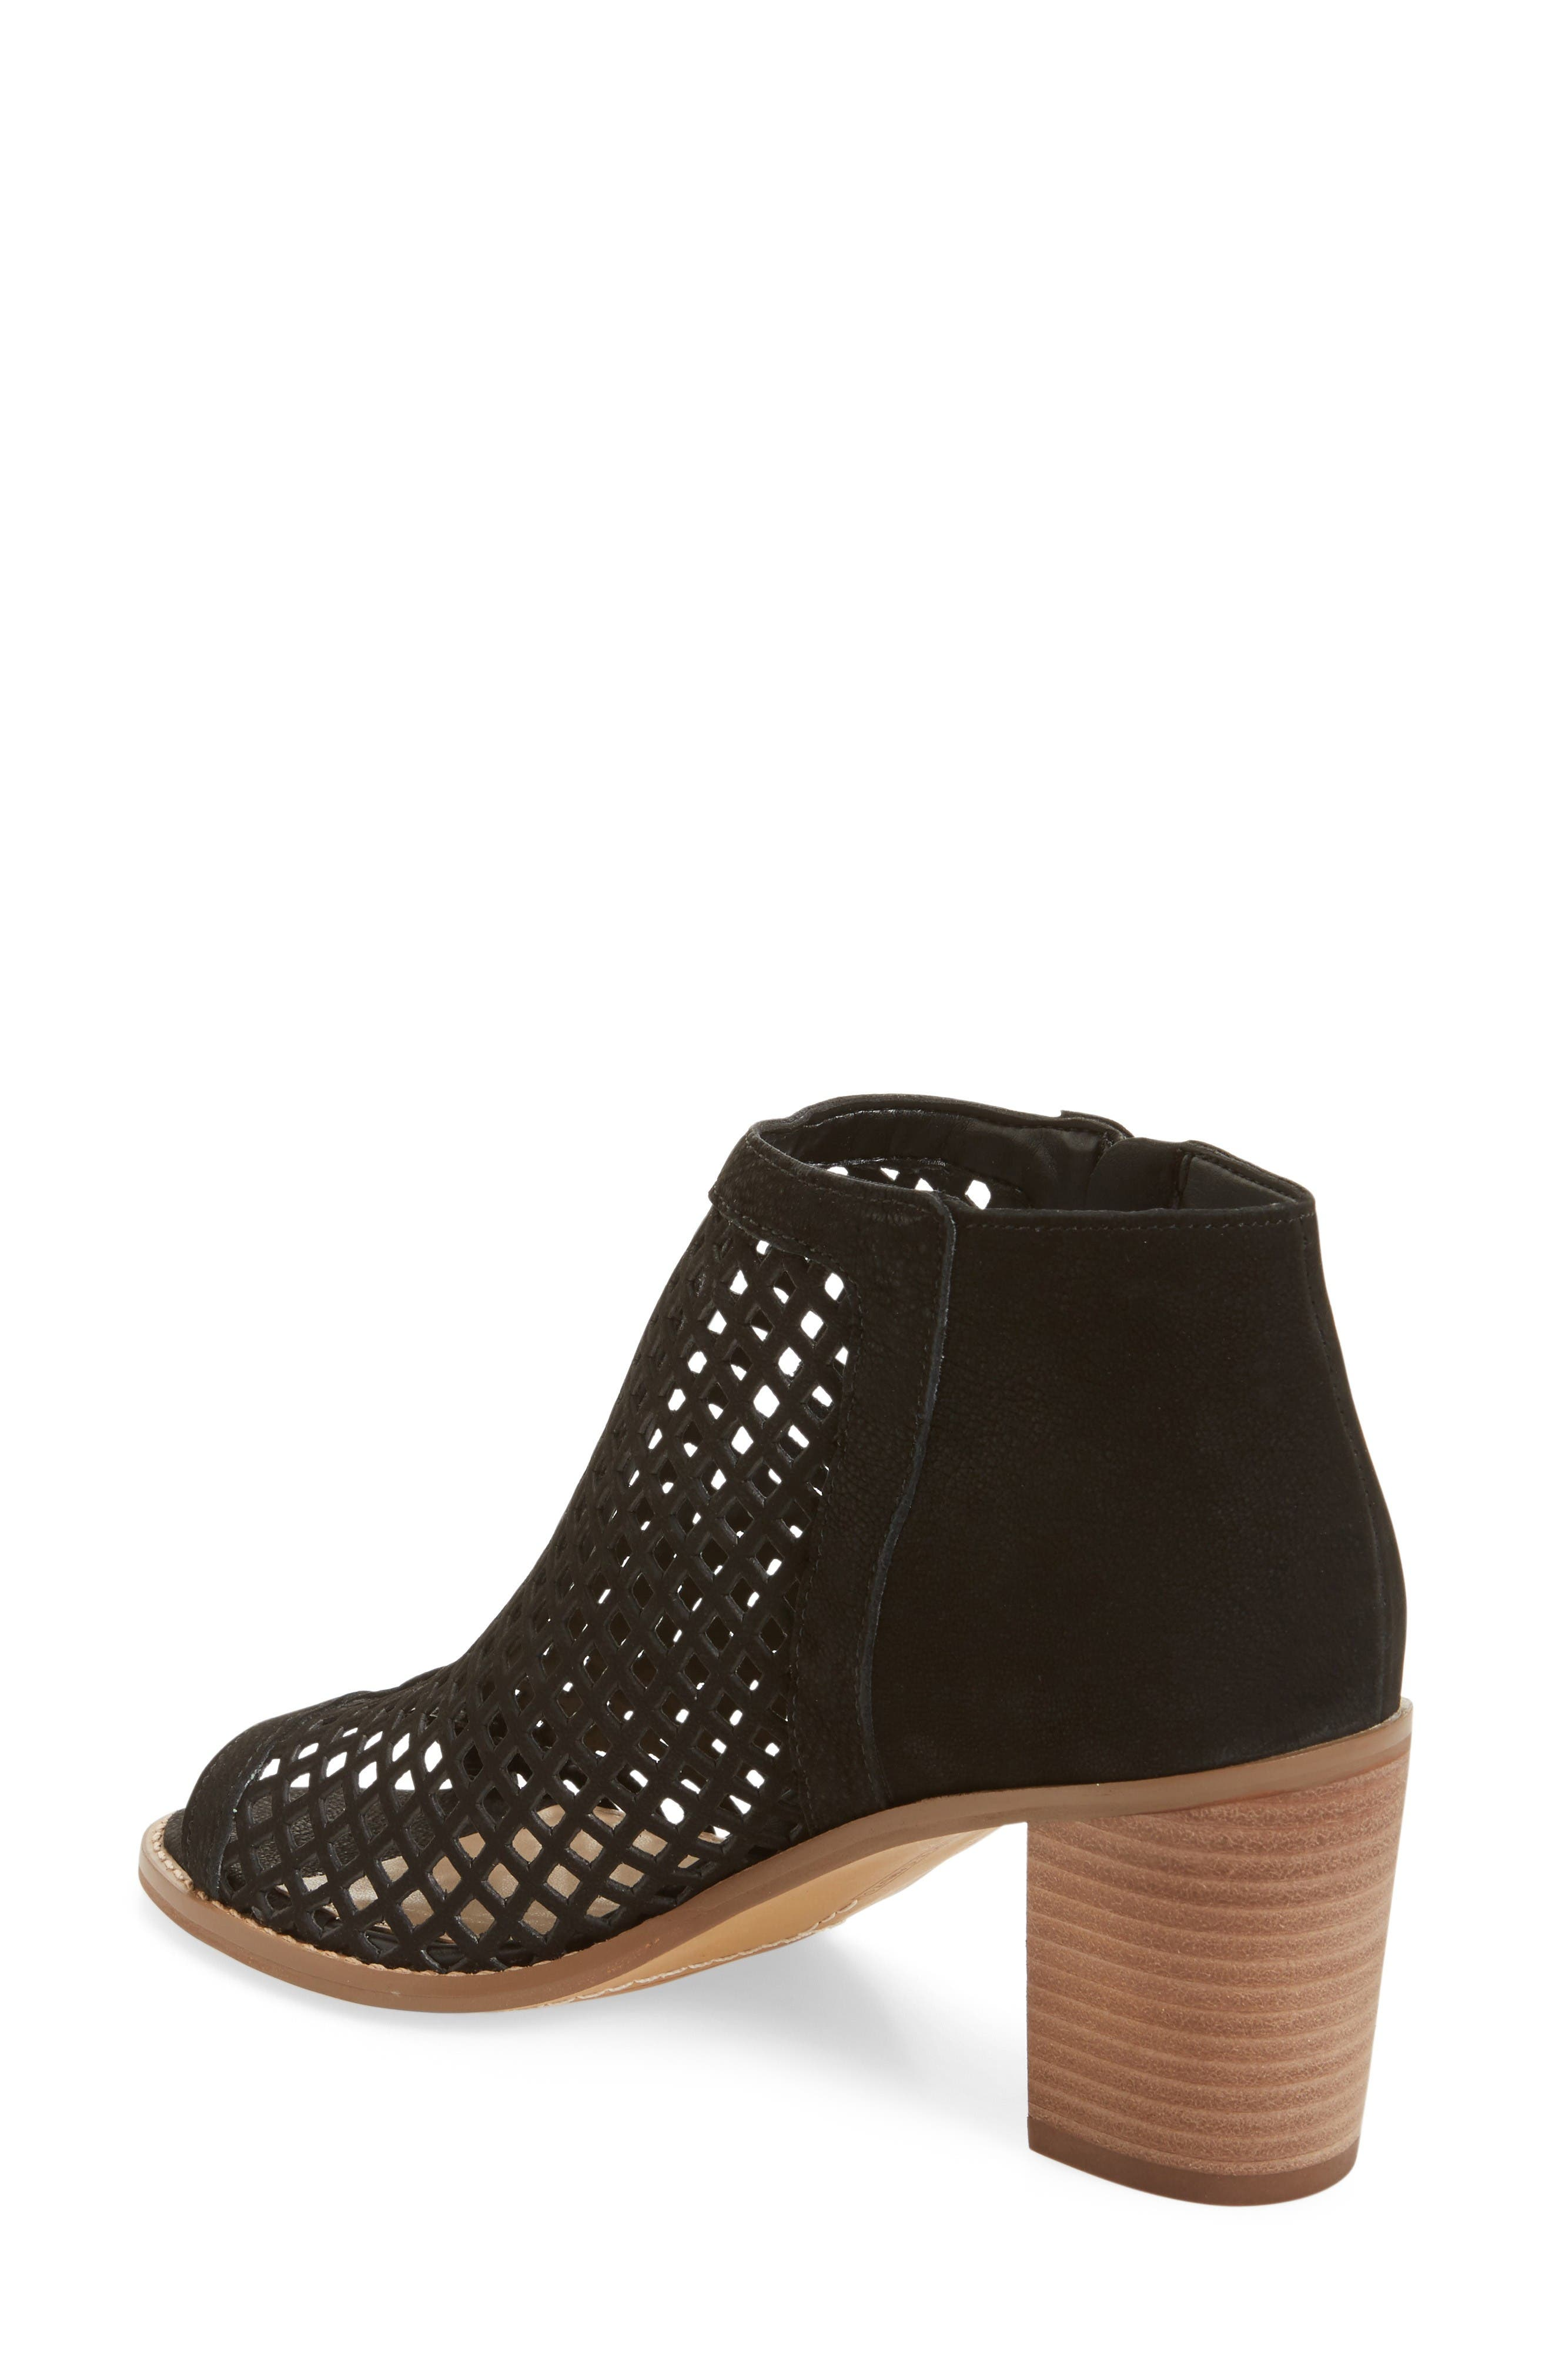 Alternate Image 2  - Vince Camuto Tresin Perforated Open-Toe Bootie (Women)